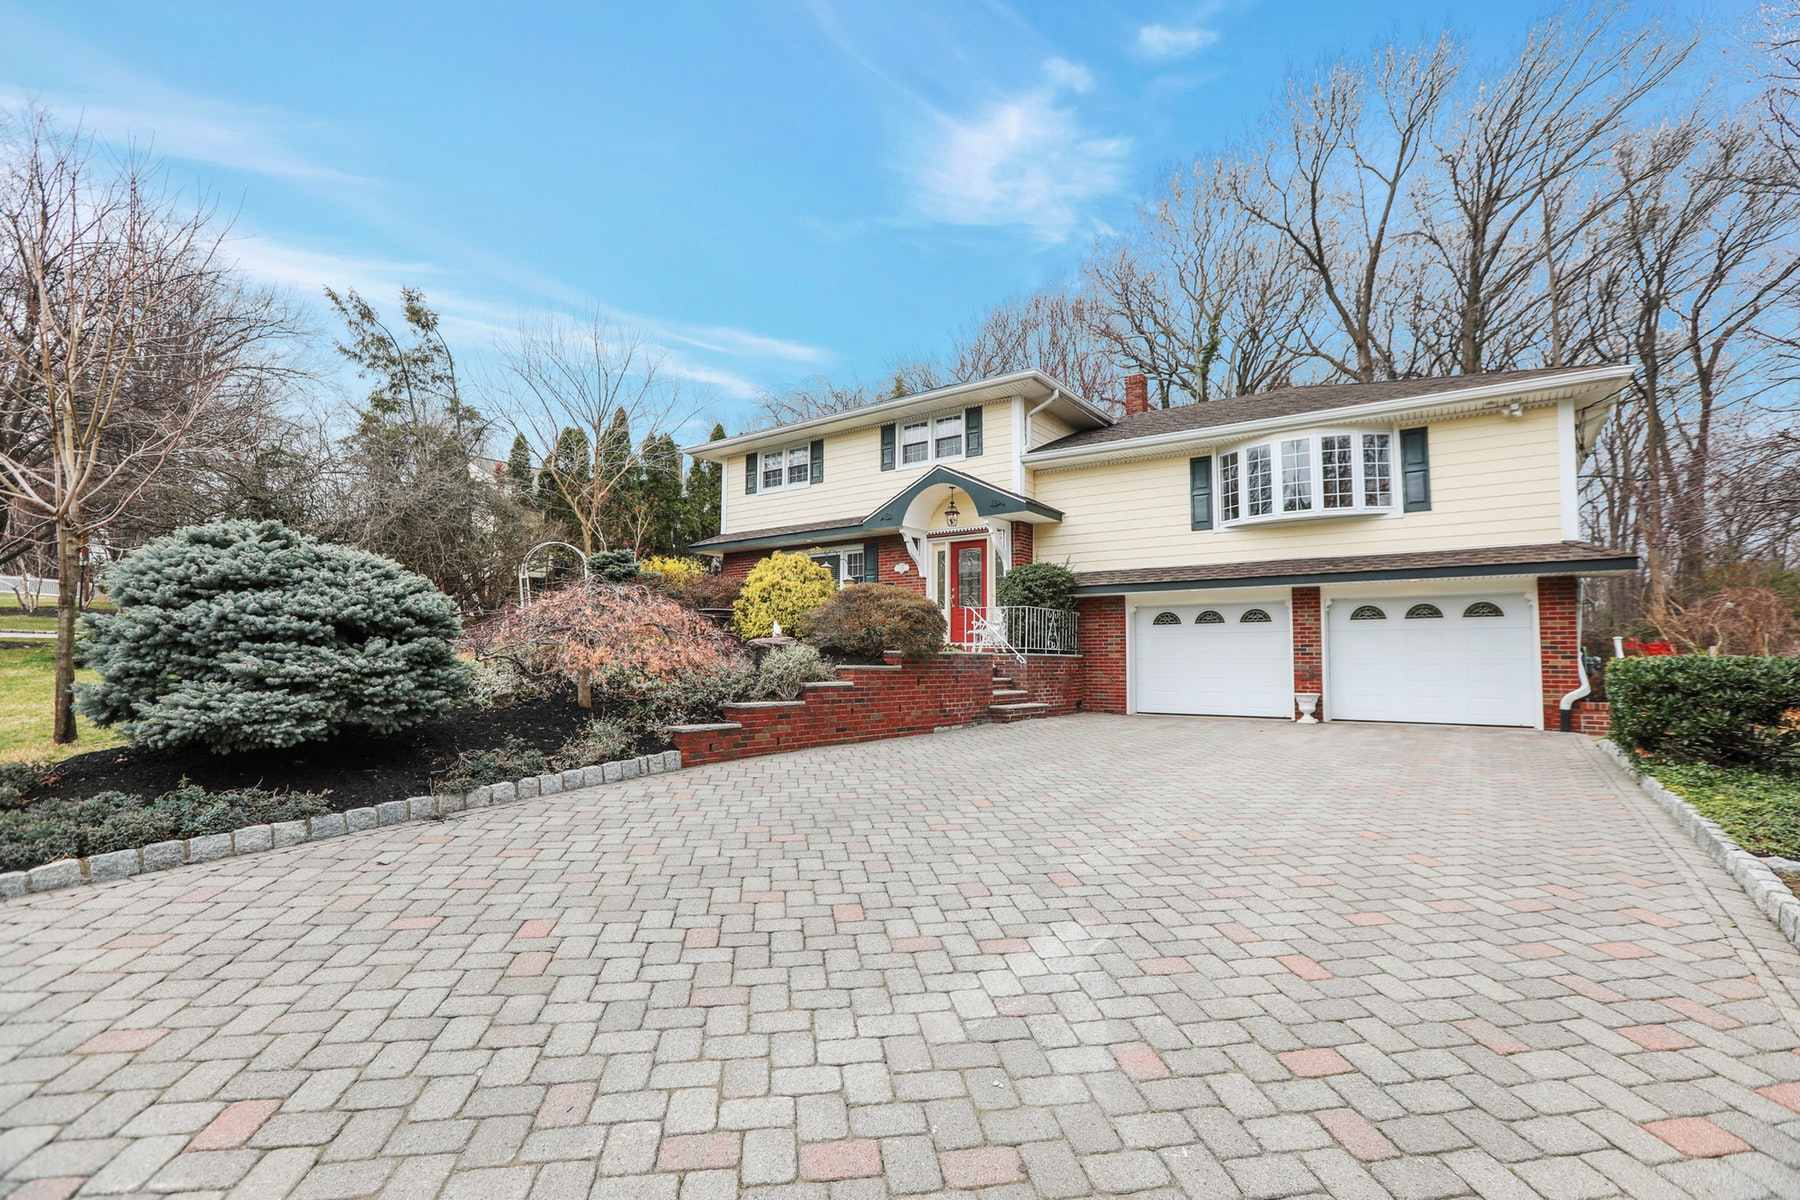 Single Family Homes for Active at Sugar Maple Beauty 189 Fredrick Street Paramus, New Jersey 07652 United States